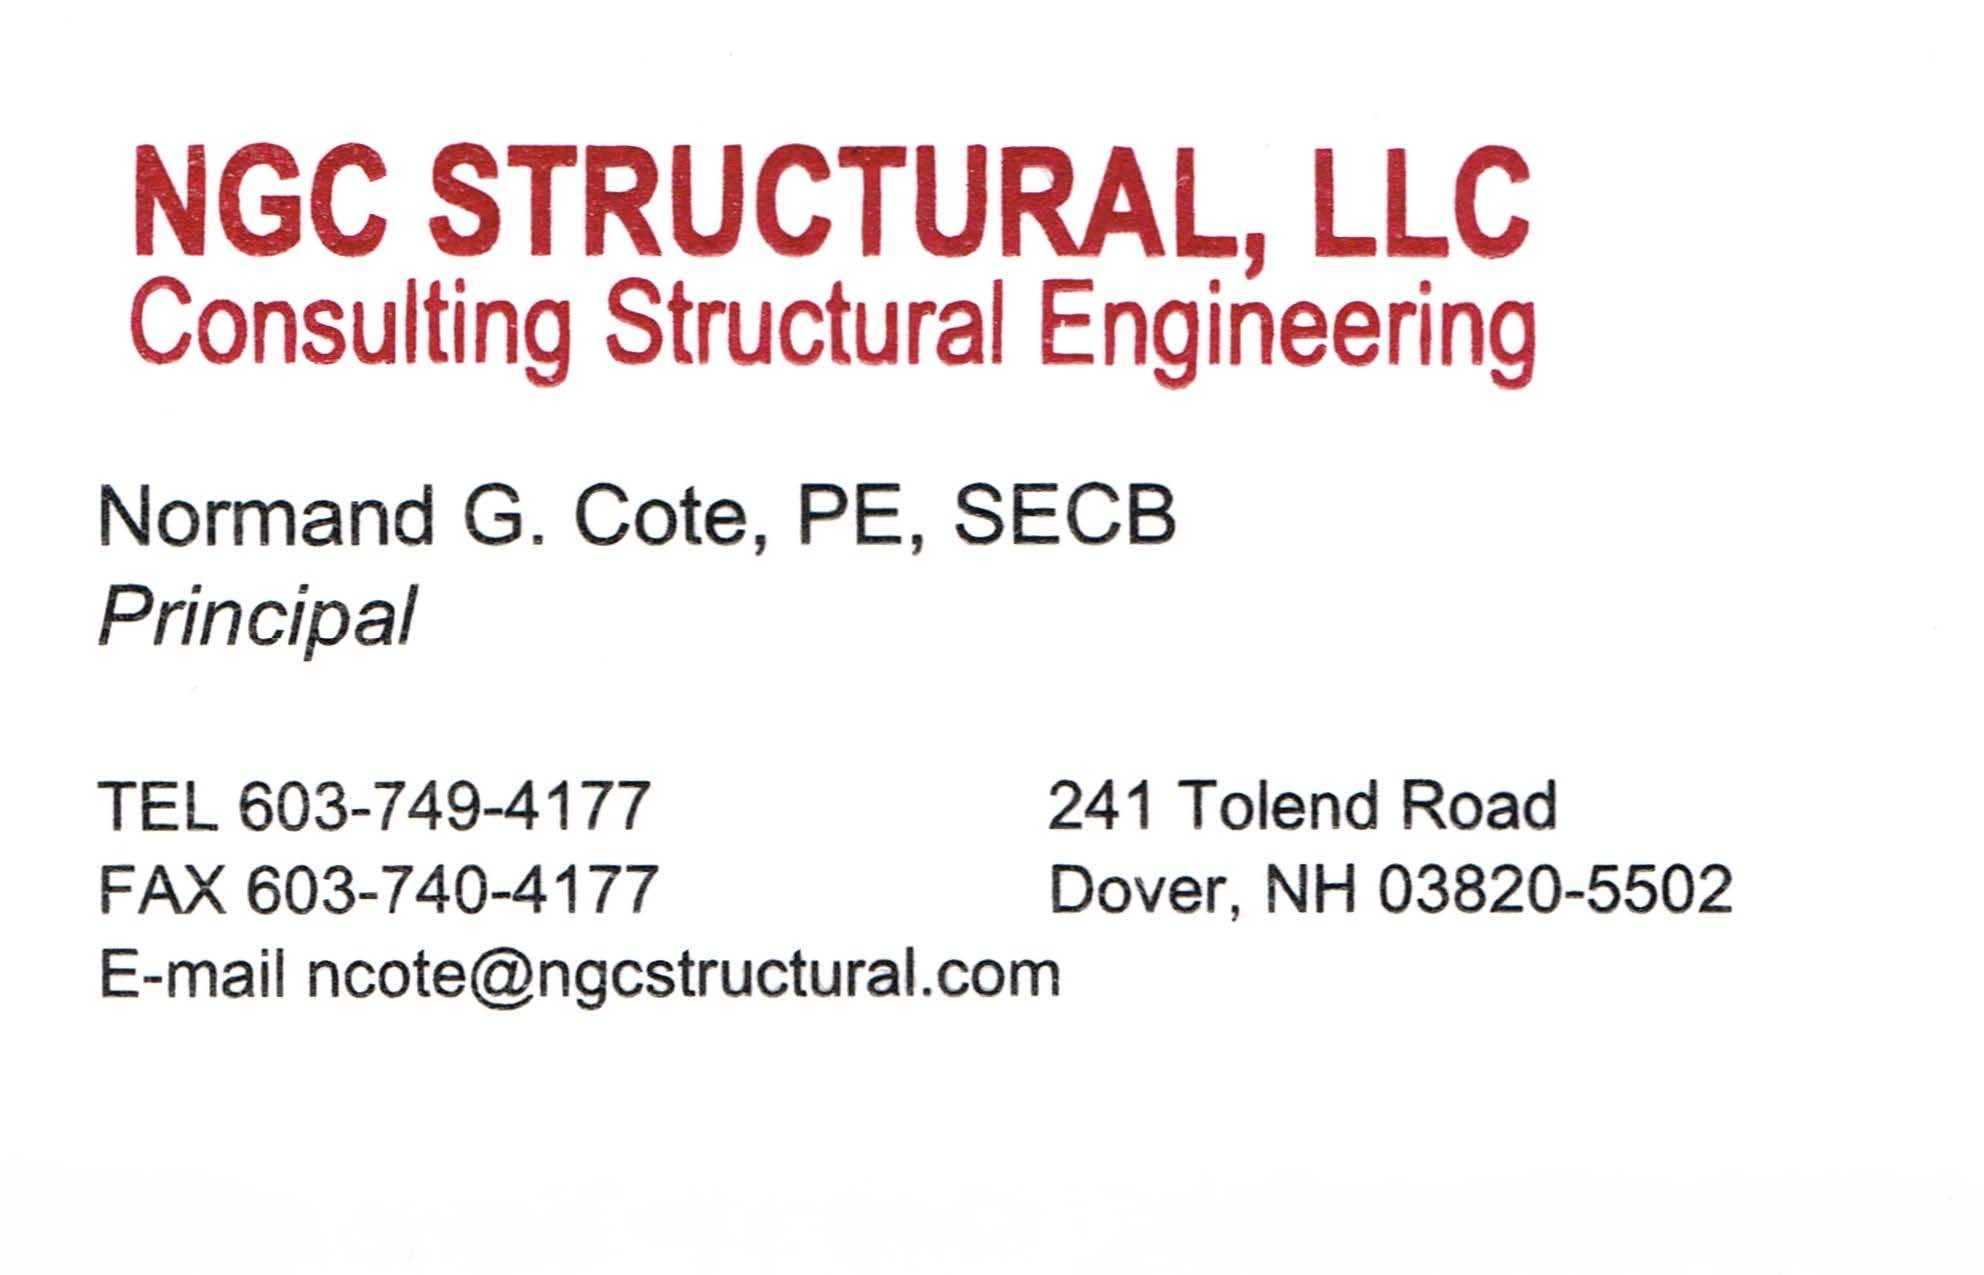 NGC Structural LLC company